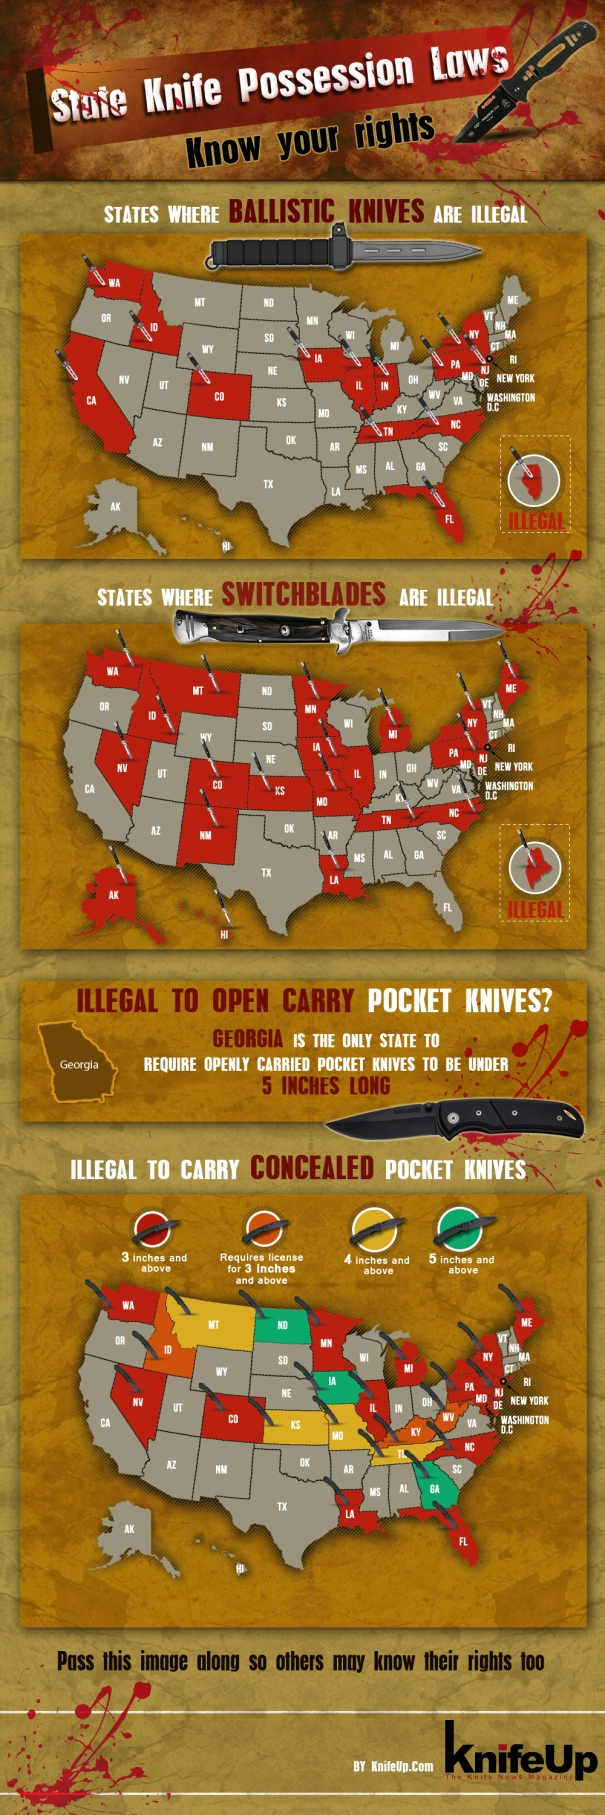 Know Your Knife Laws!